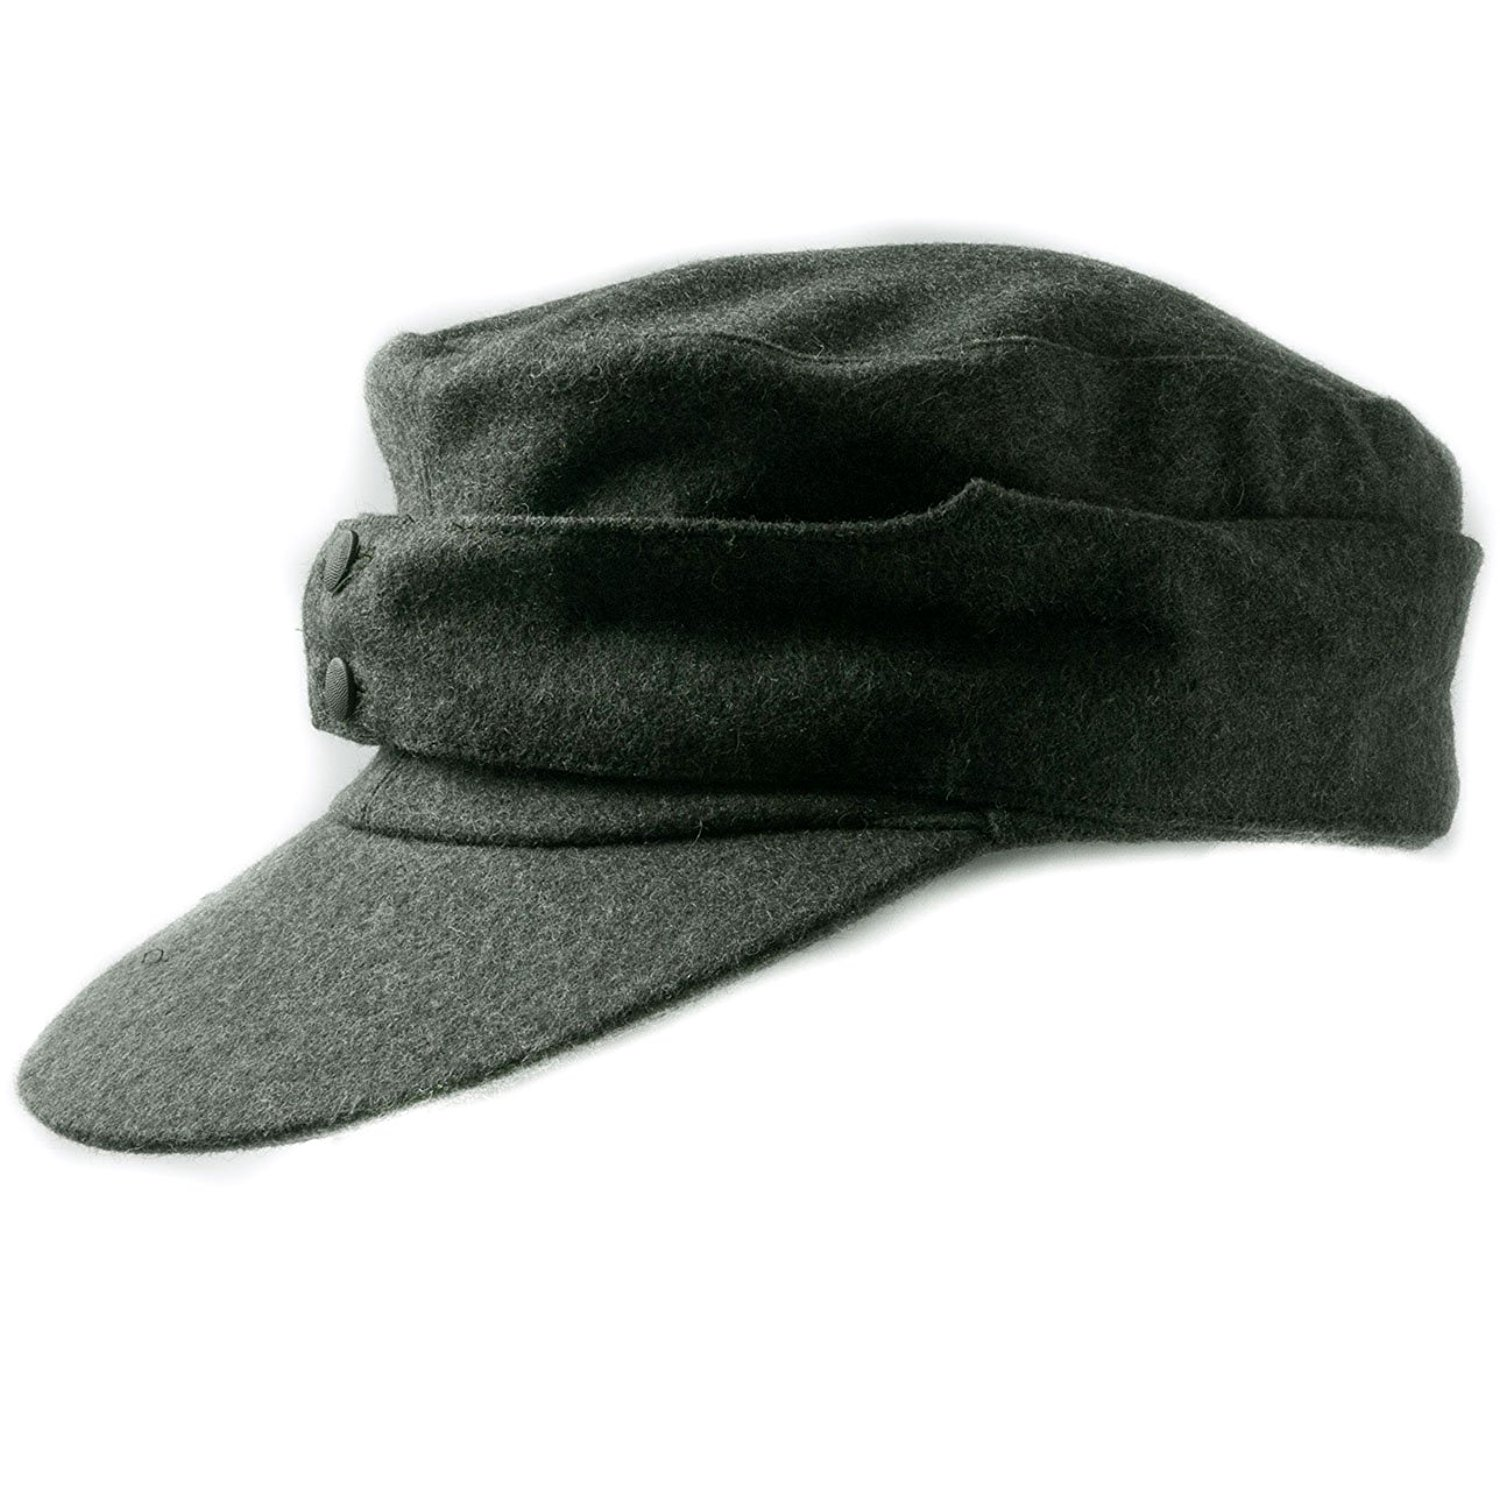 5282f6e1064353 Get Quotations · Heerpoint Reproducation WWII German WH EM M43 Panzer Wool  Field Cap